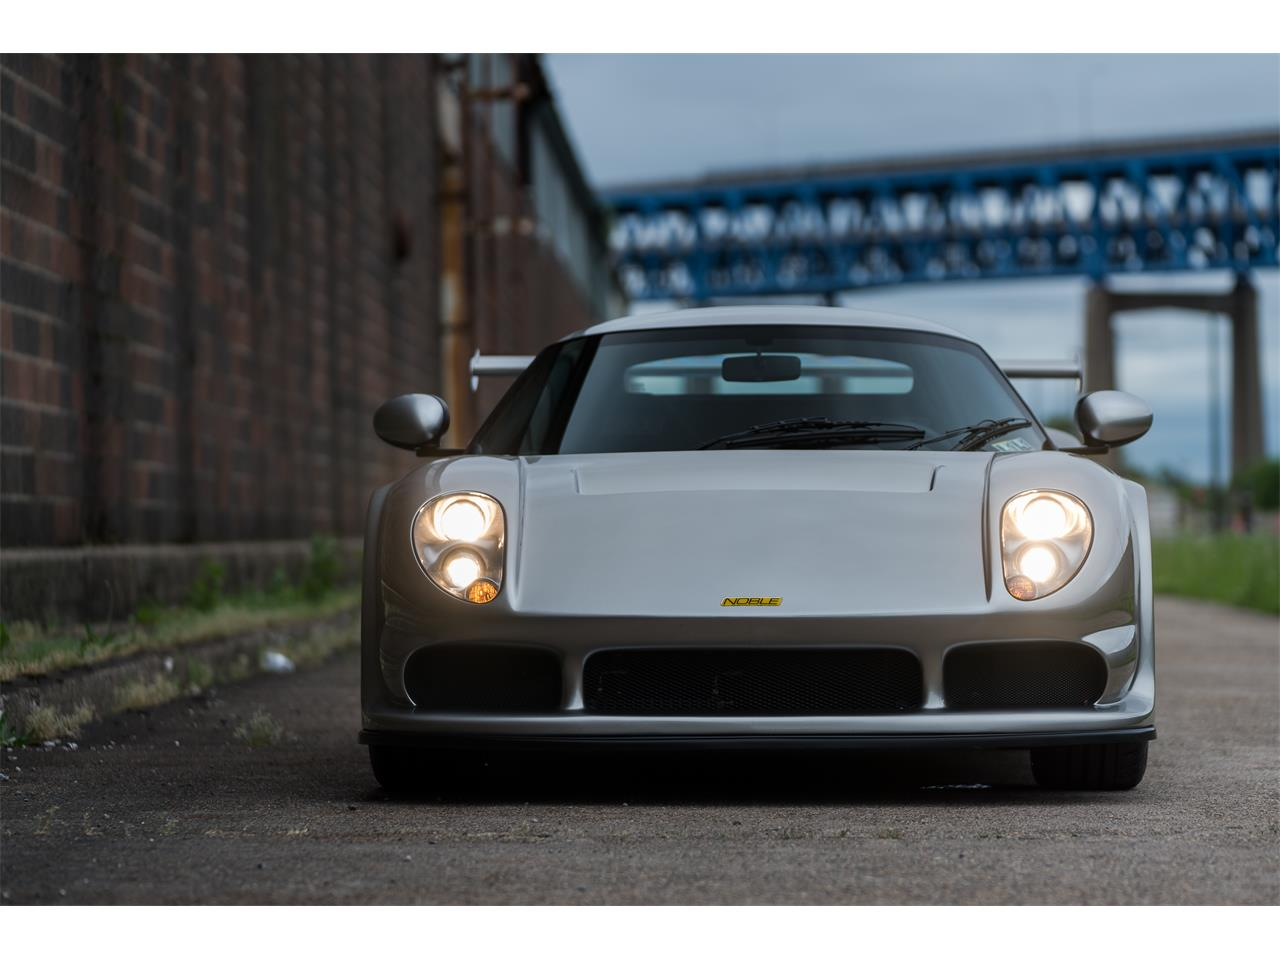 Large Picture of '07 Noble M400 - $75,000.00 - NS5S